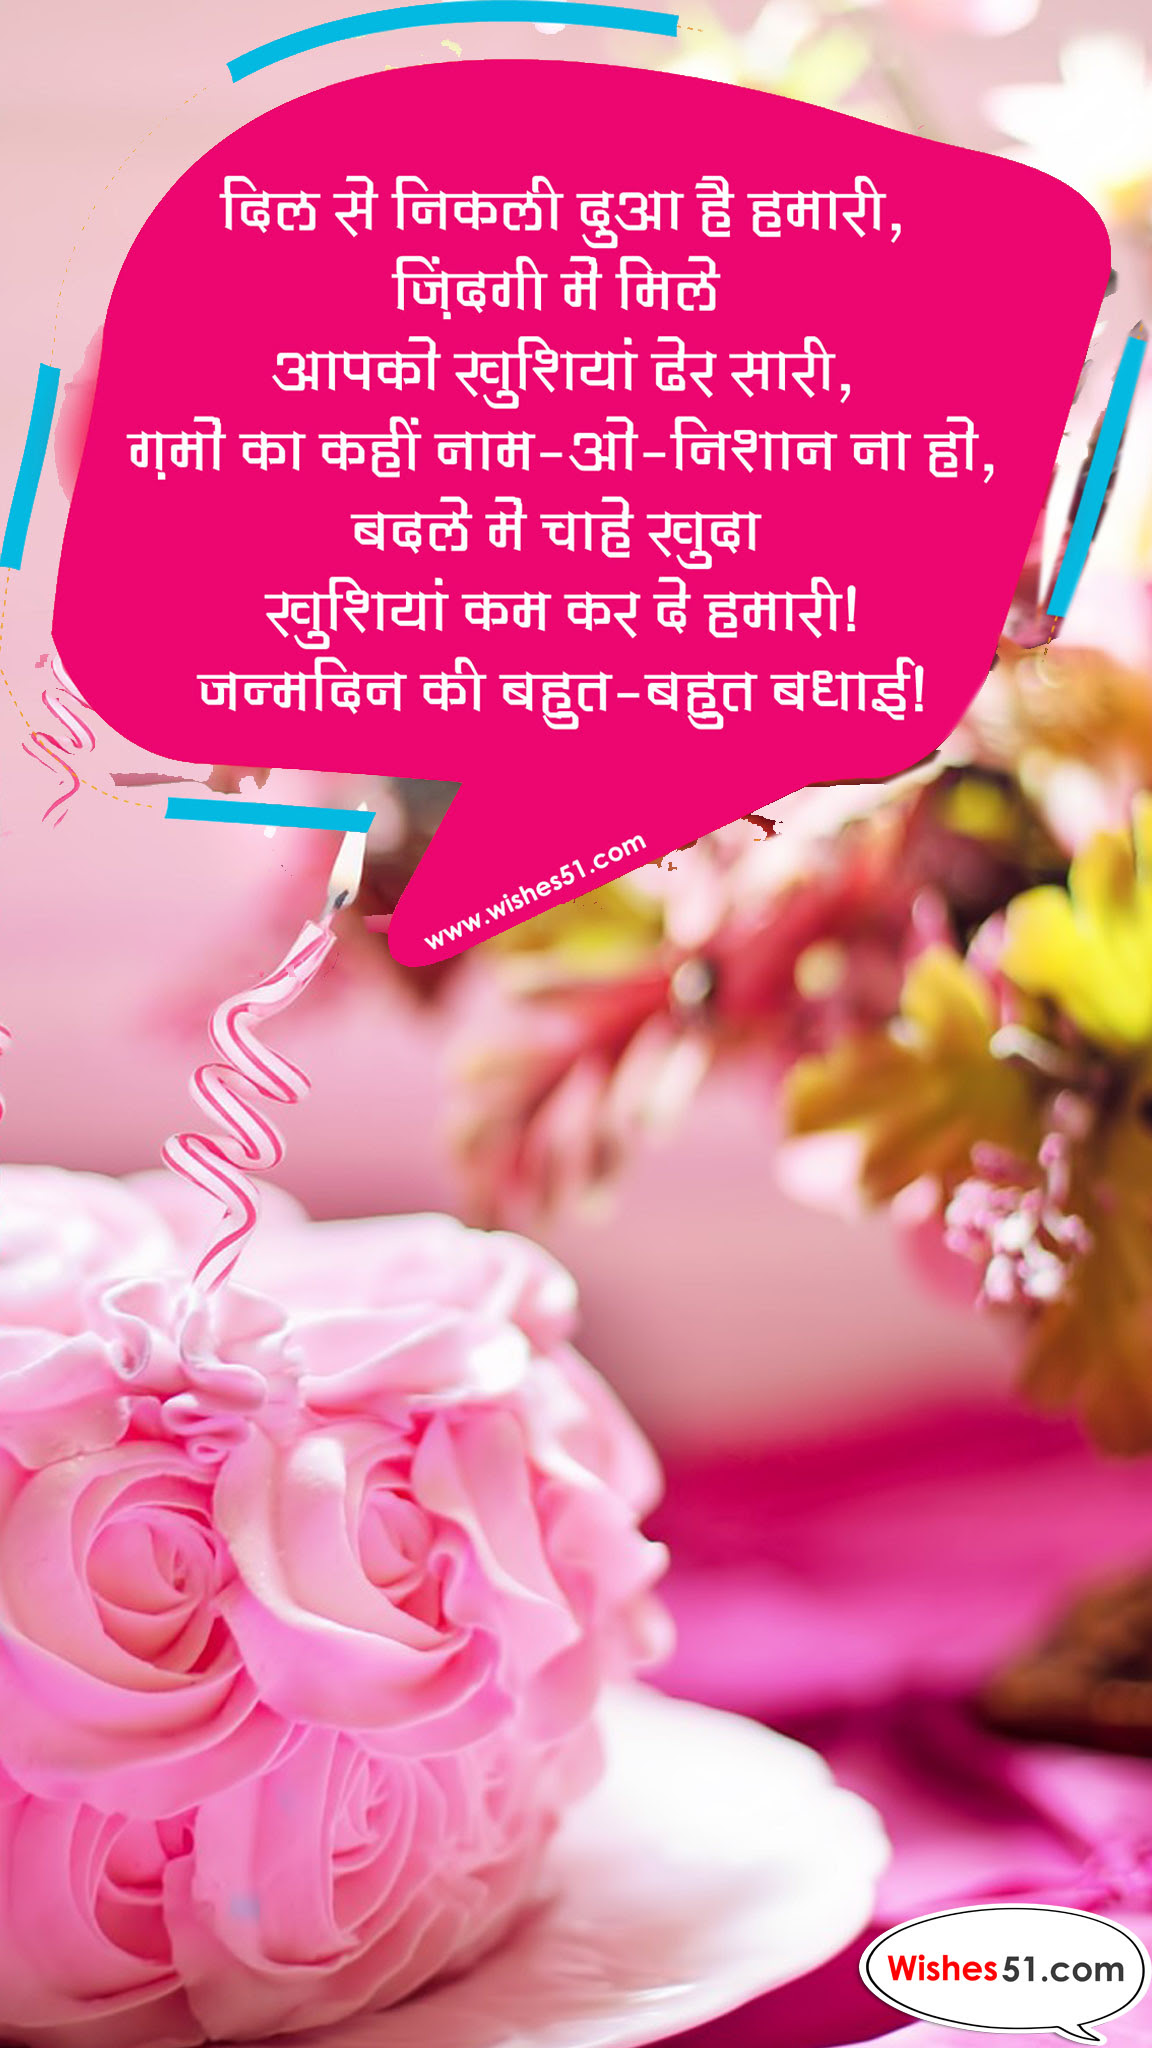 Top 5 Happy Birthday Wishes In Hindi Best Happy Birthday Wishes In